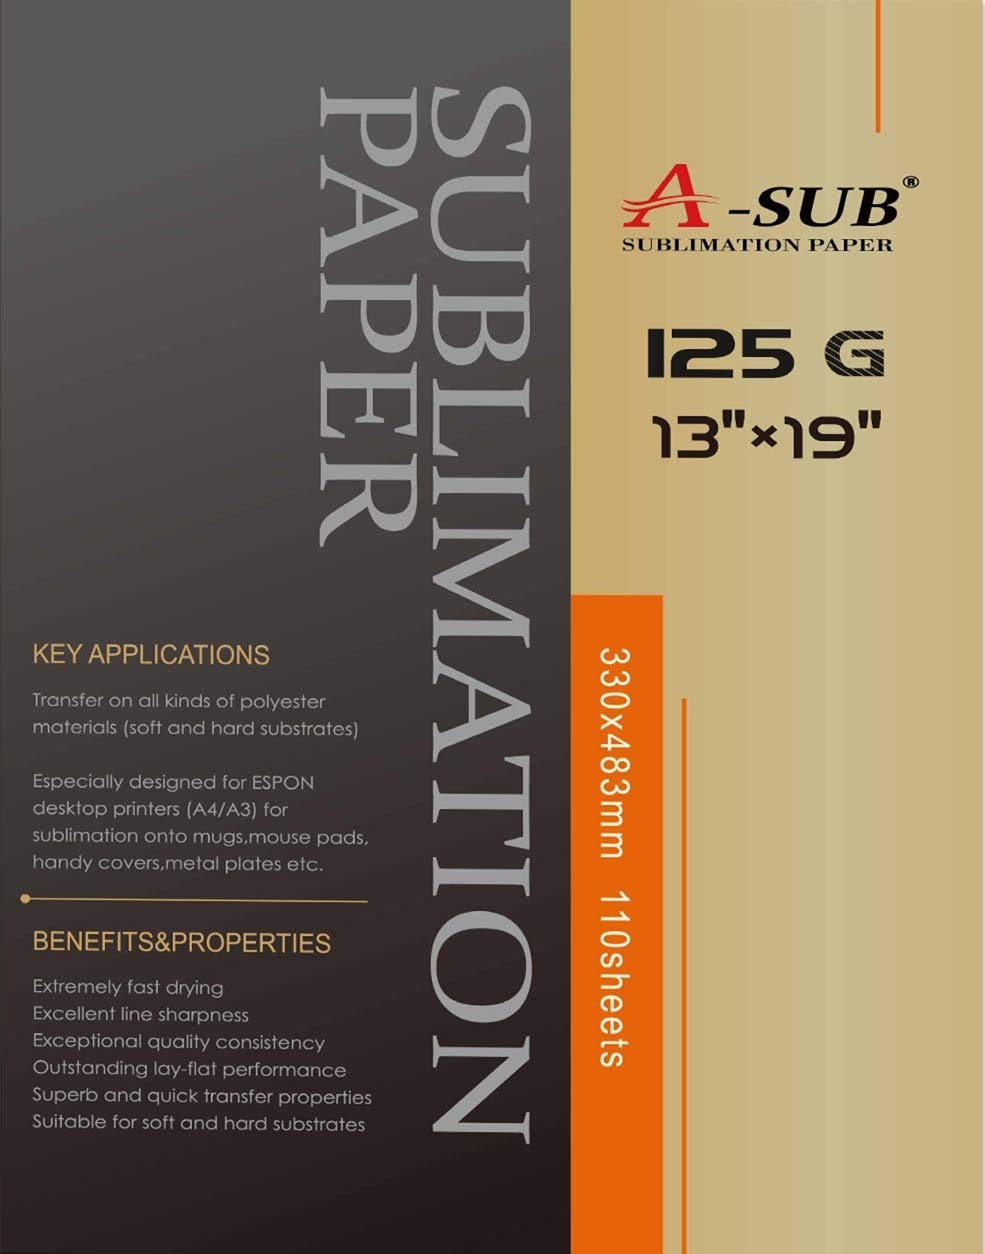 A-SUB Sublimation Paper 13X19 Inches for All Inkjet Printer with Sublimation Ink,110 Sheets